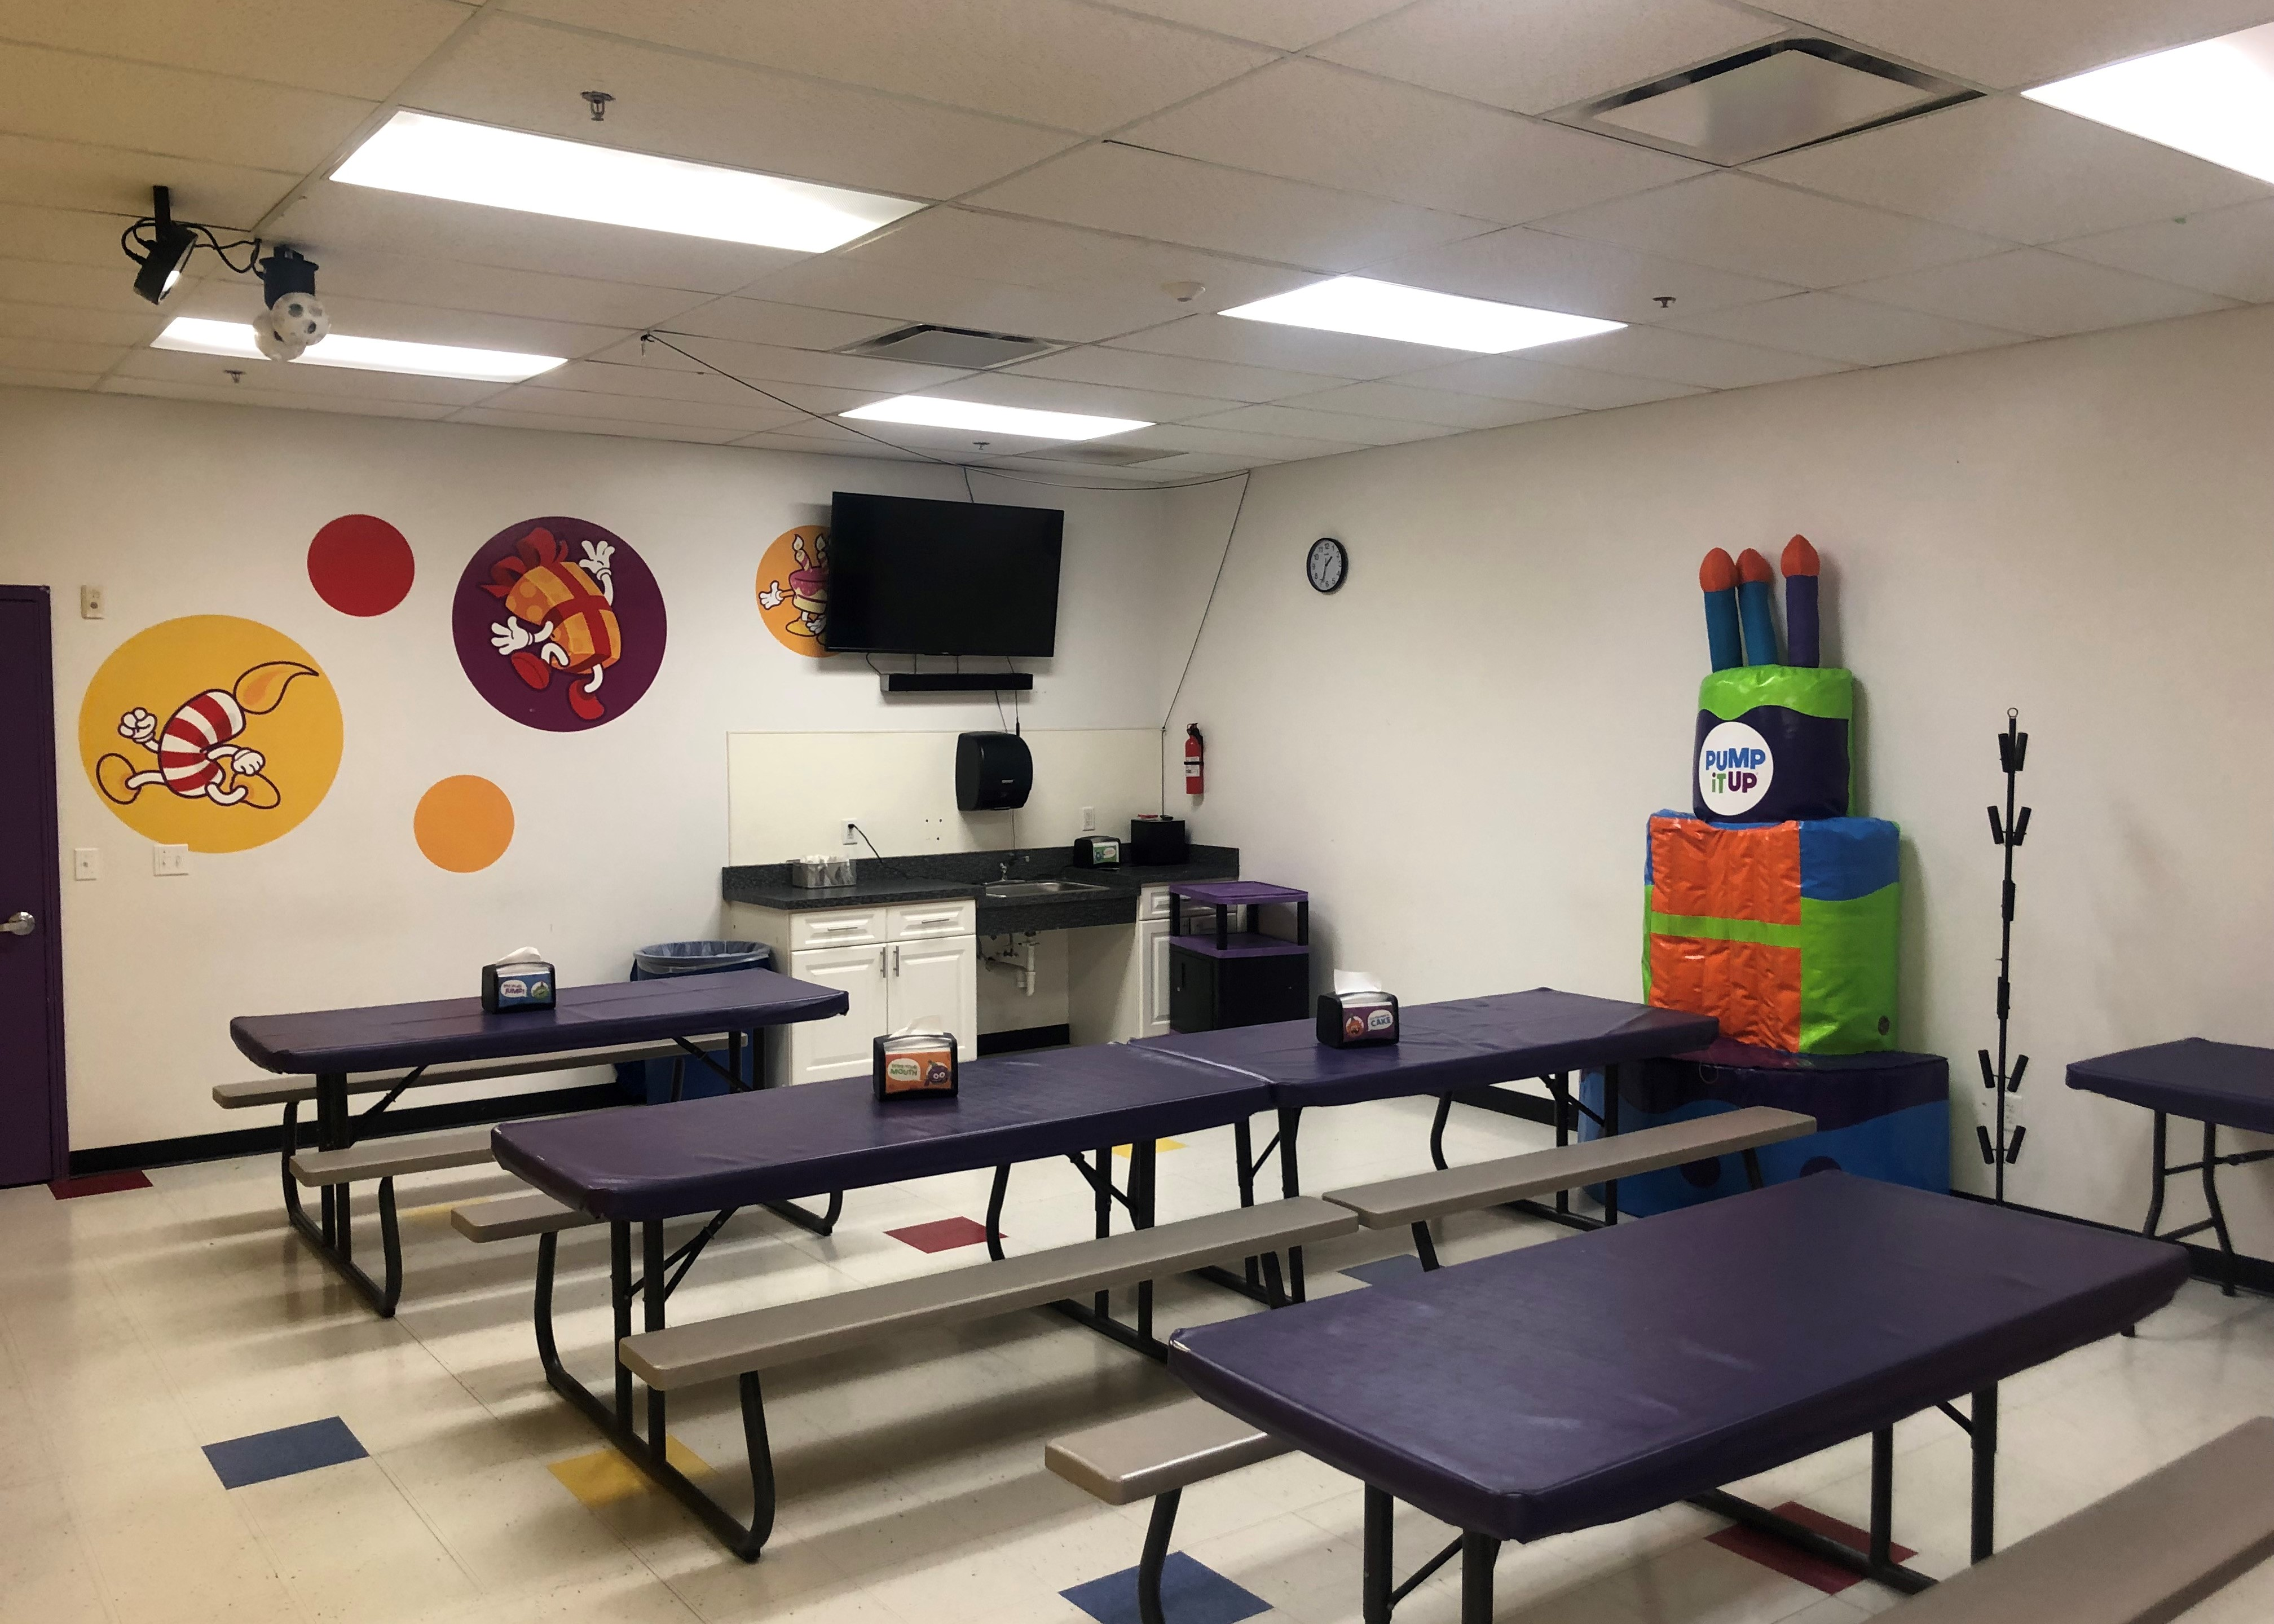 Pump It Up birthday party room with throne for birthday child and tables for guests of the private party.